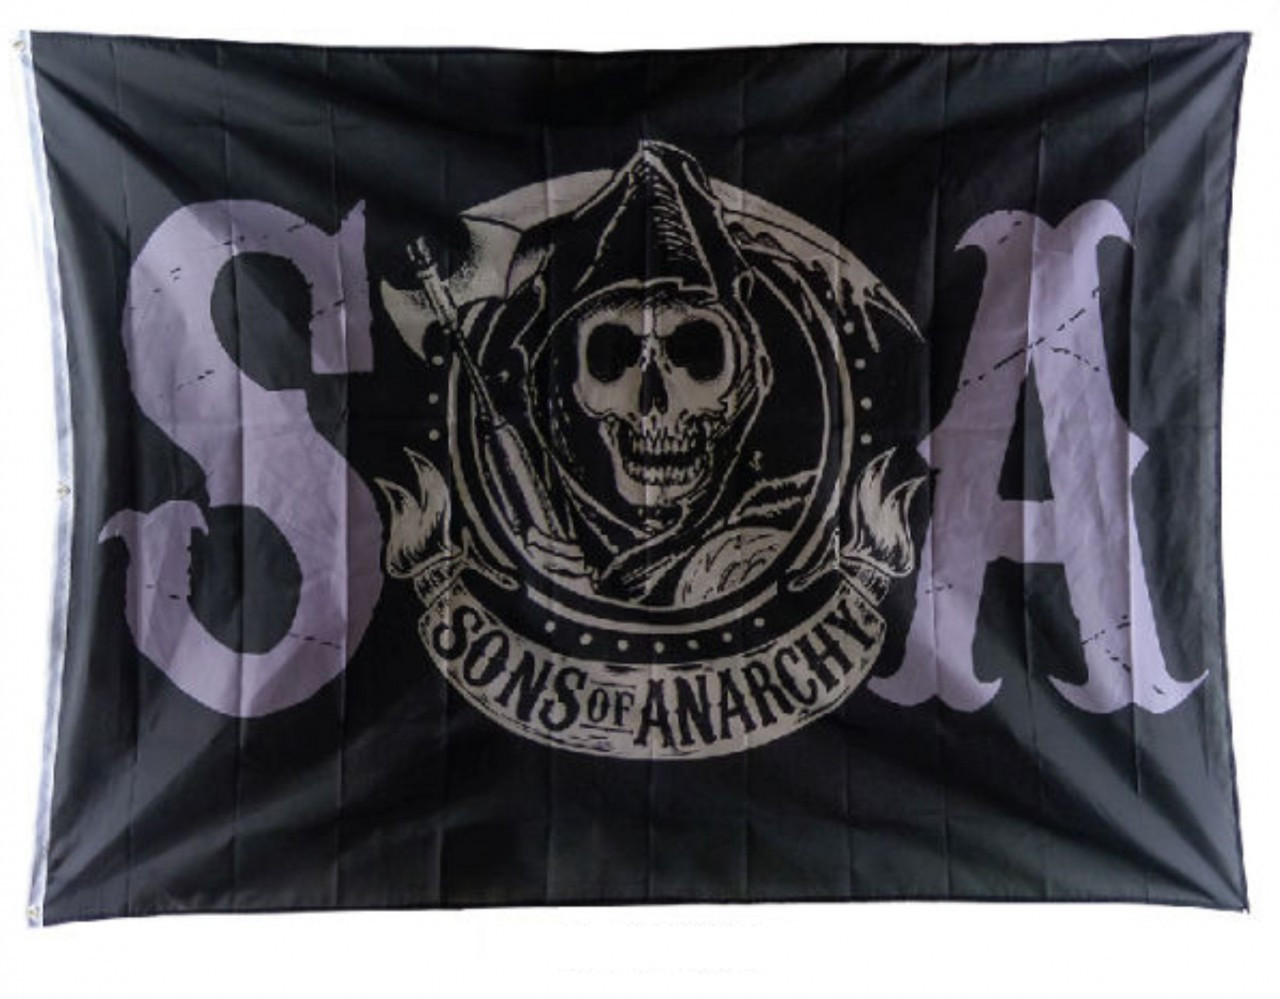 Sons of Anarchy SOA banner - Hollywood Filane 7d4843bd76bf